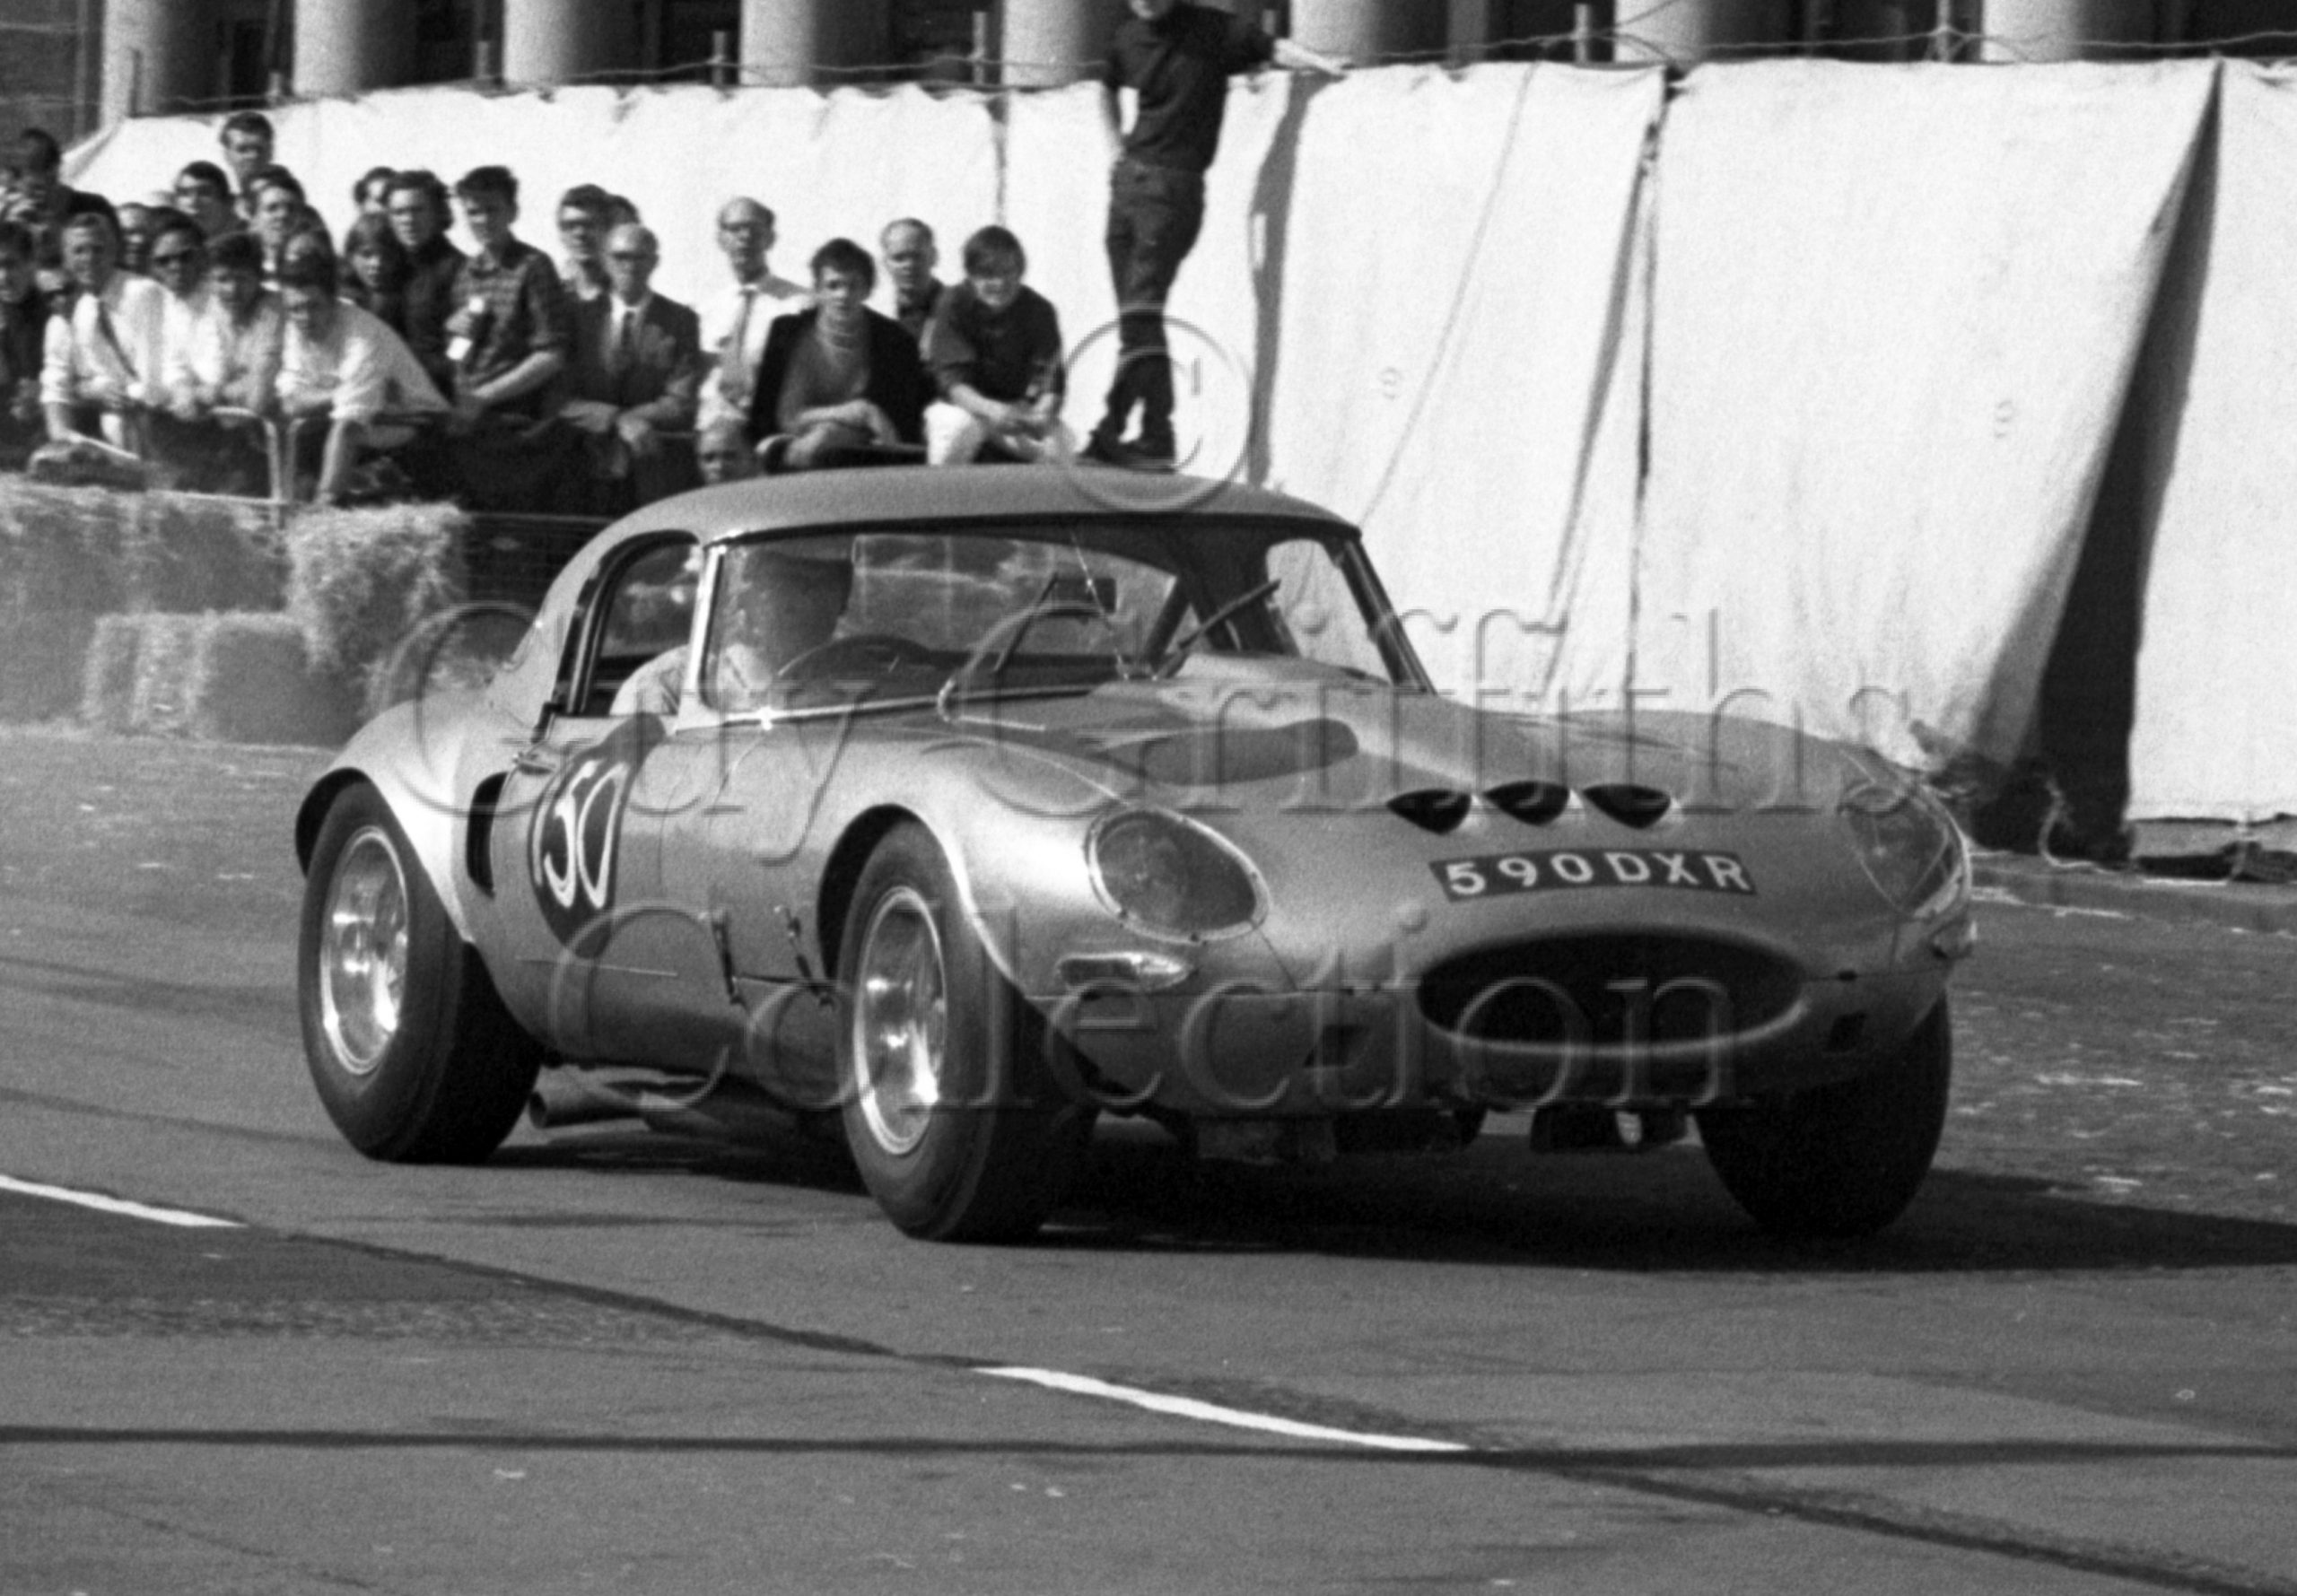 102-1003–G-Richardson–Jaguar-Egal-590-DXR–Brighton–17-09-1966.jpg - Guy Griffiths Collection